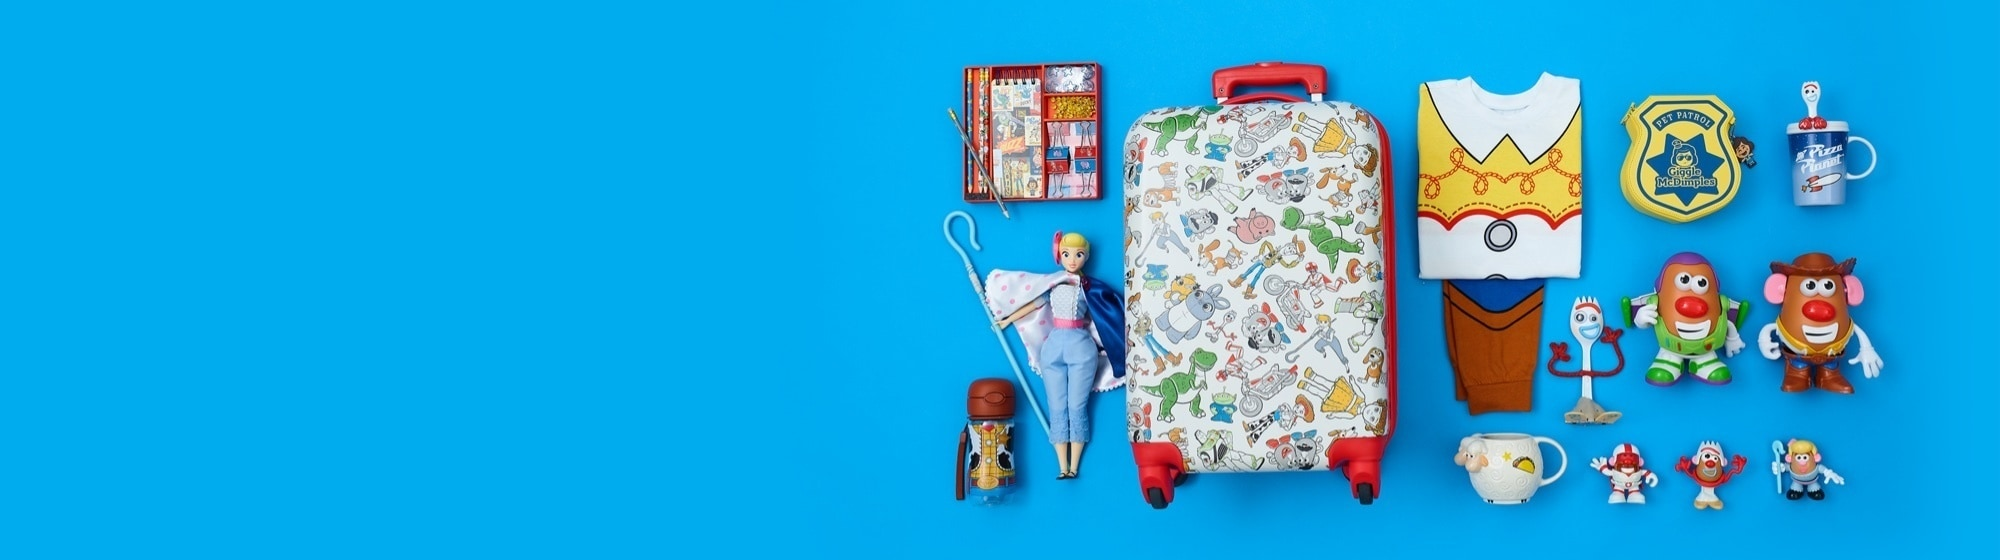 shopDisney | Toy Story 4 bij shopDisney